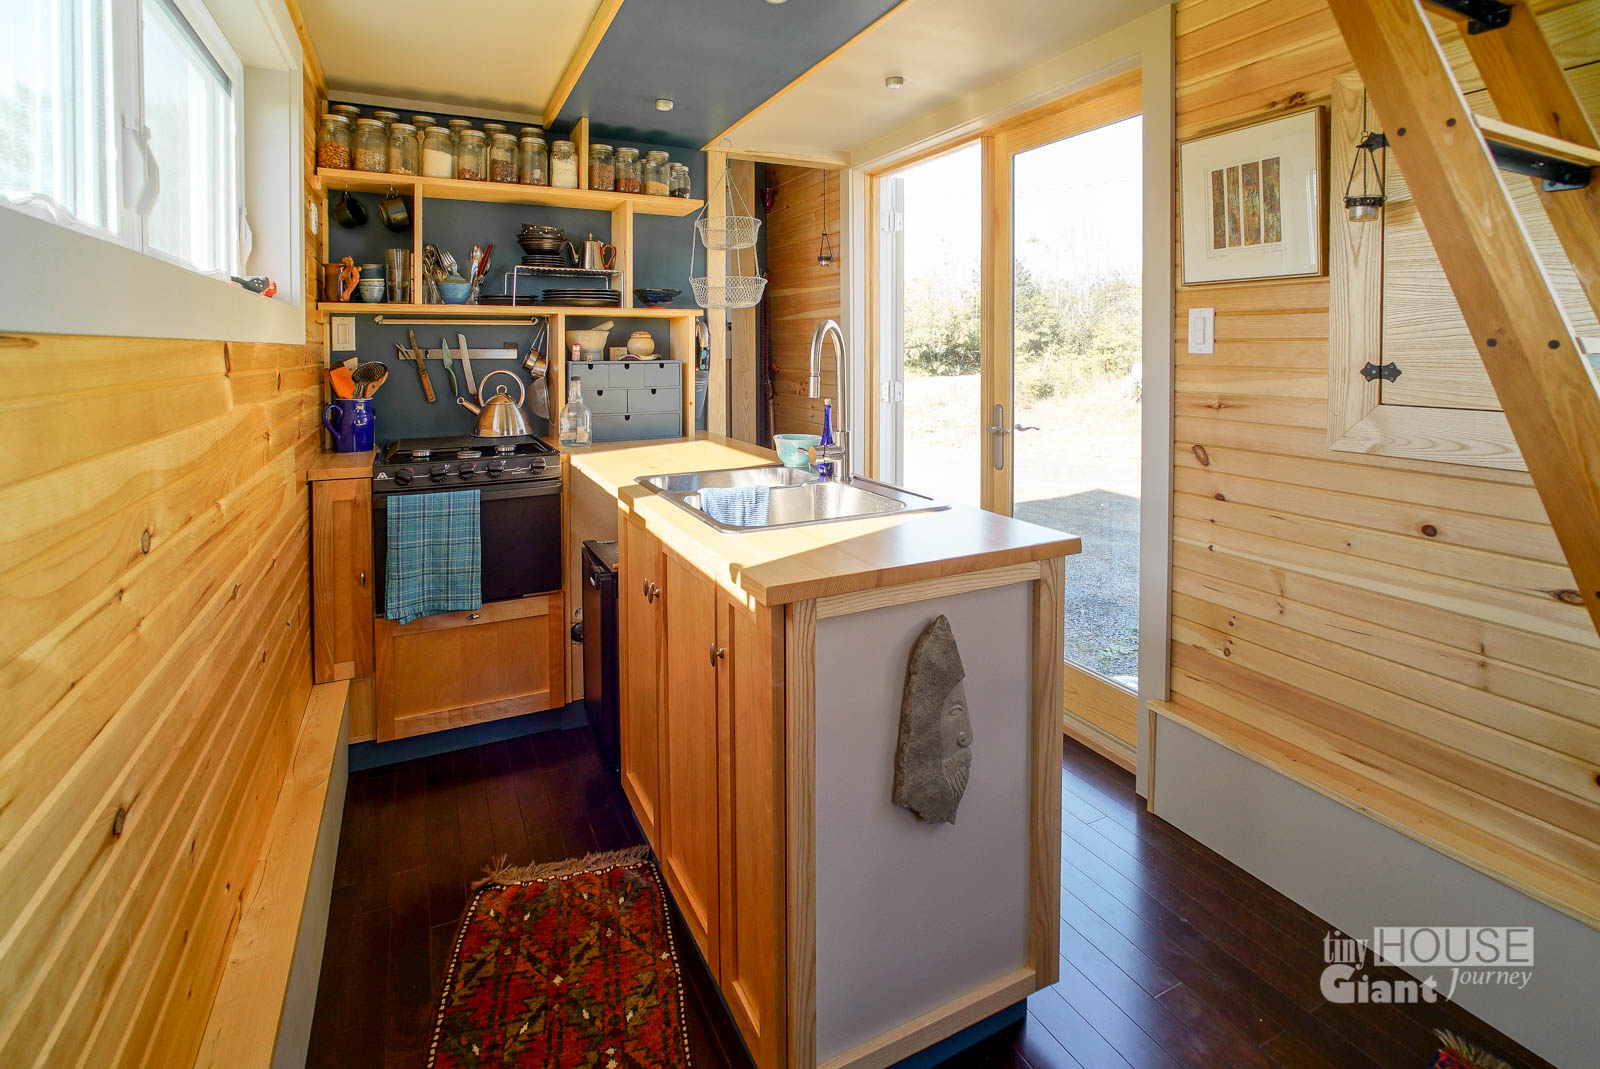 Tiny House Kitchen 10 Tiny House Tricks For Decluttering Your Counters Tiny House